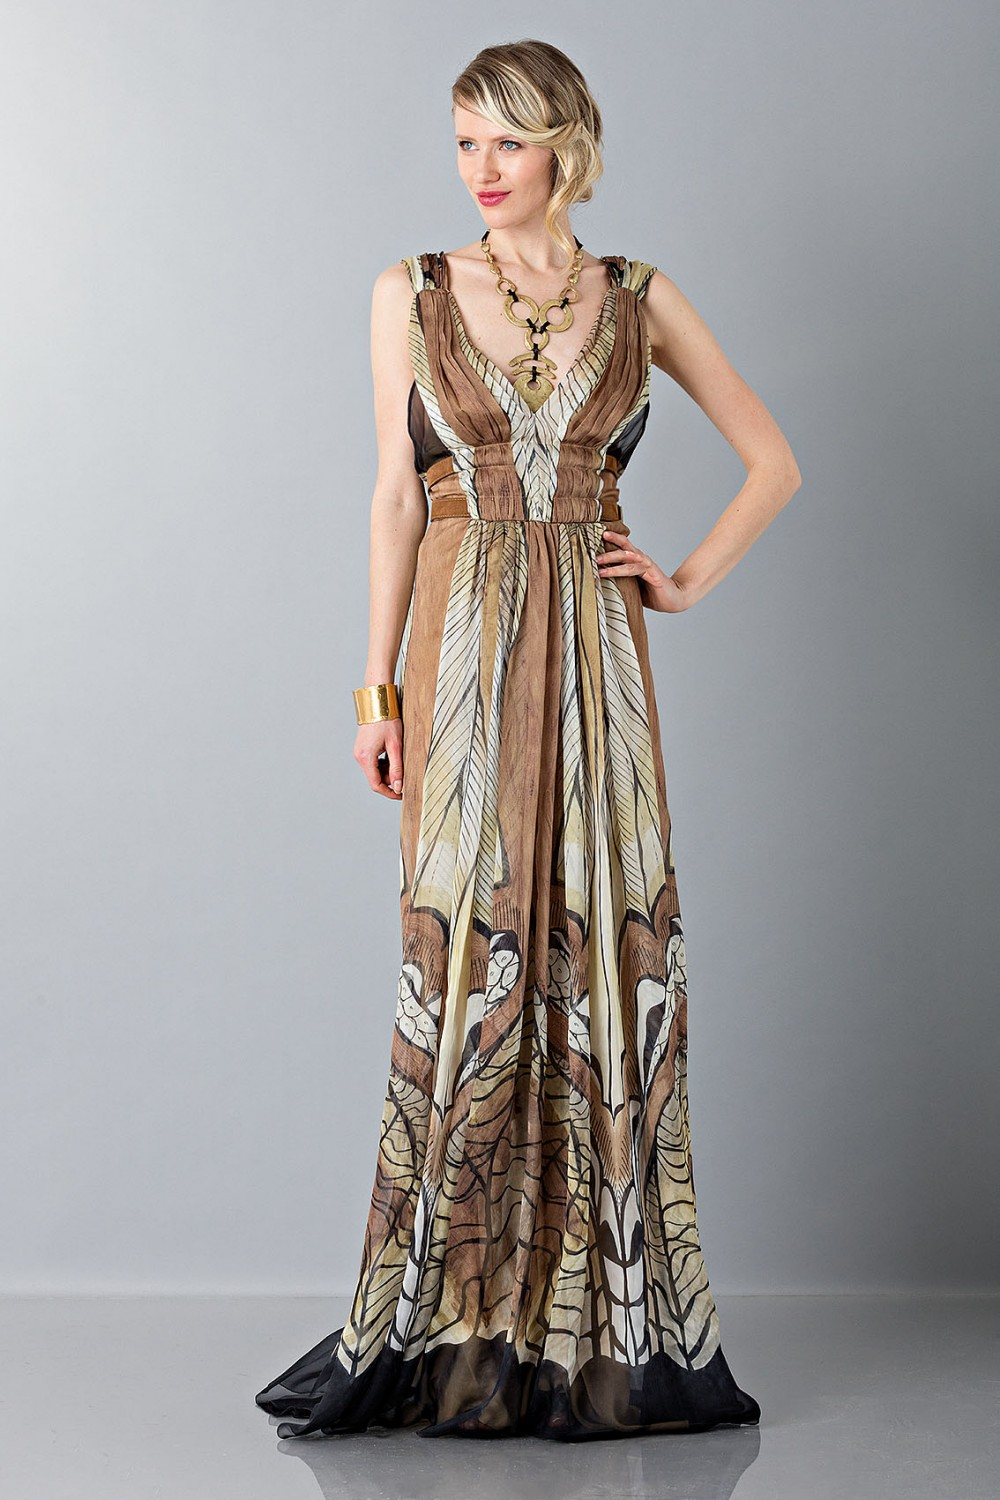 Ethinc floor-length dress